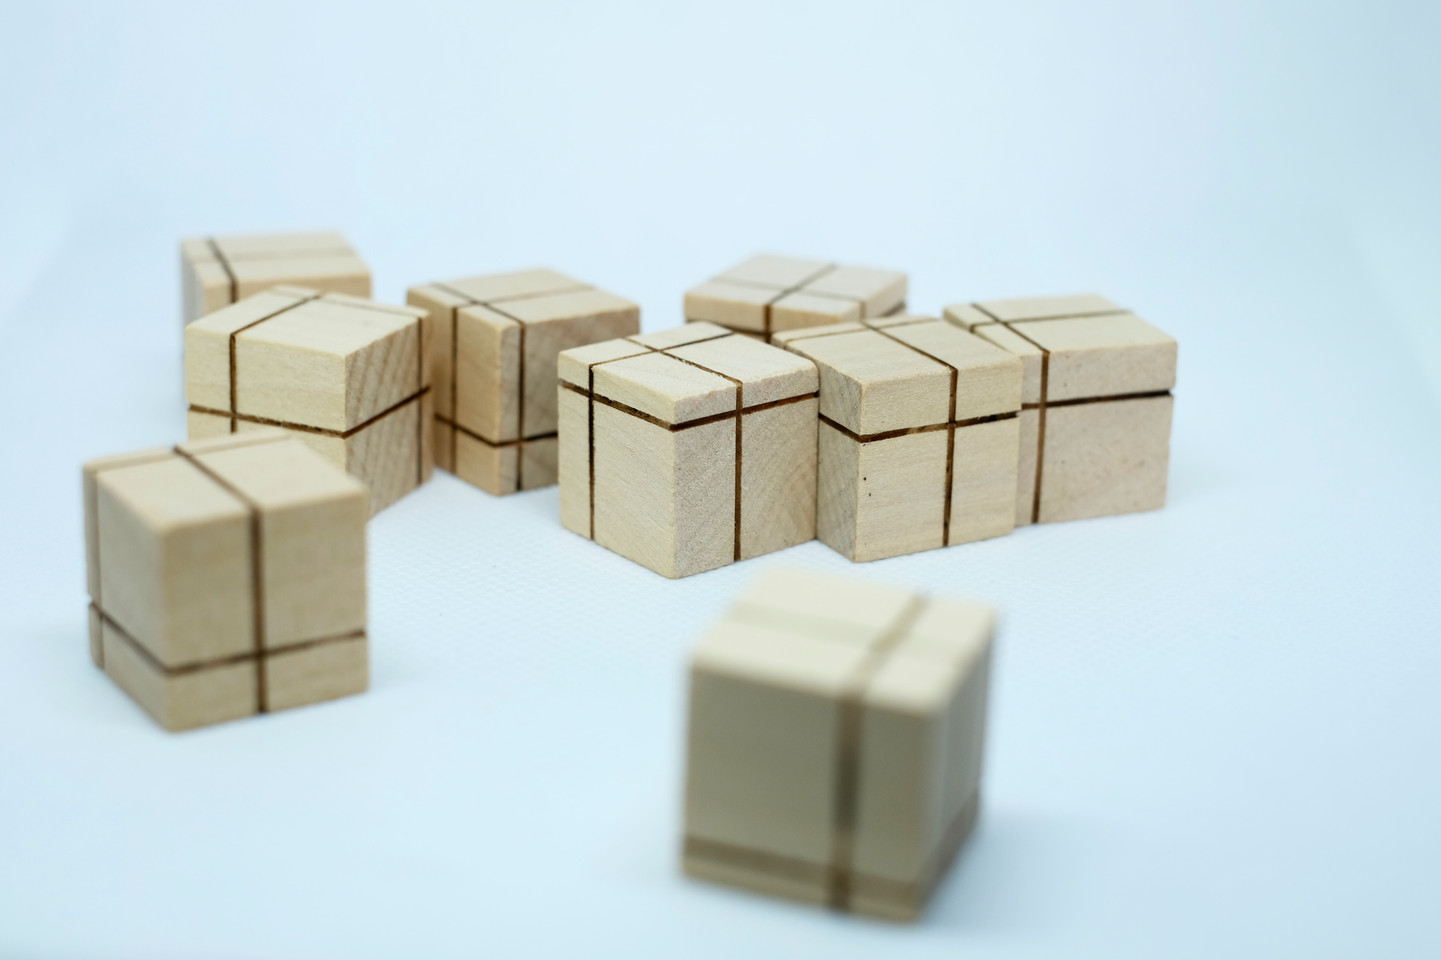 Wooden Dice group